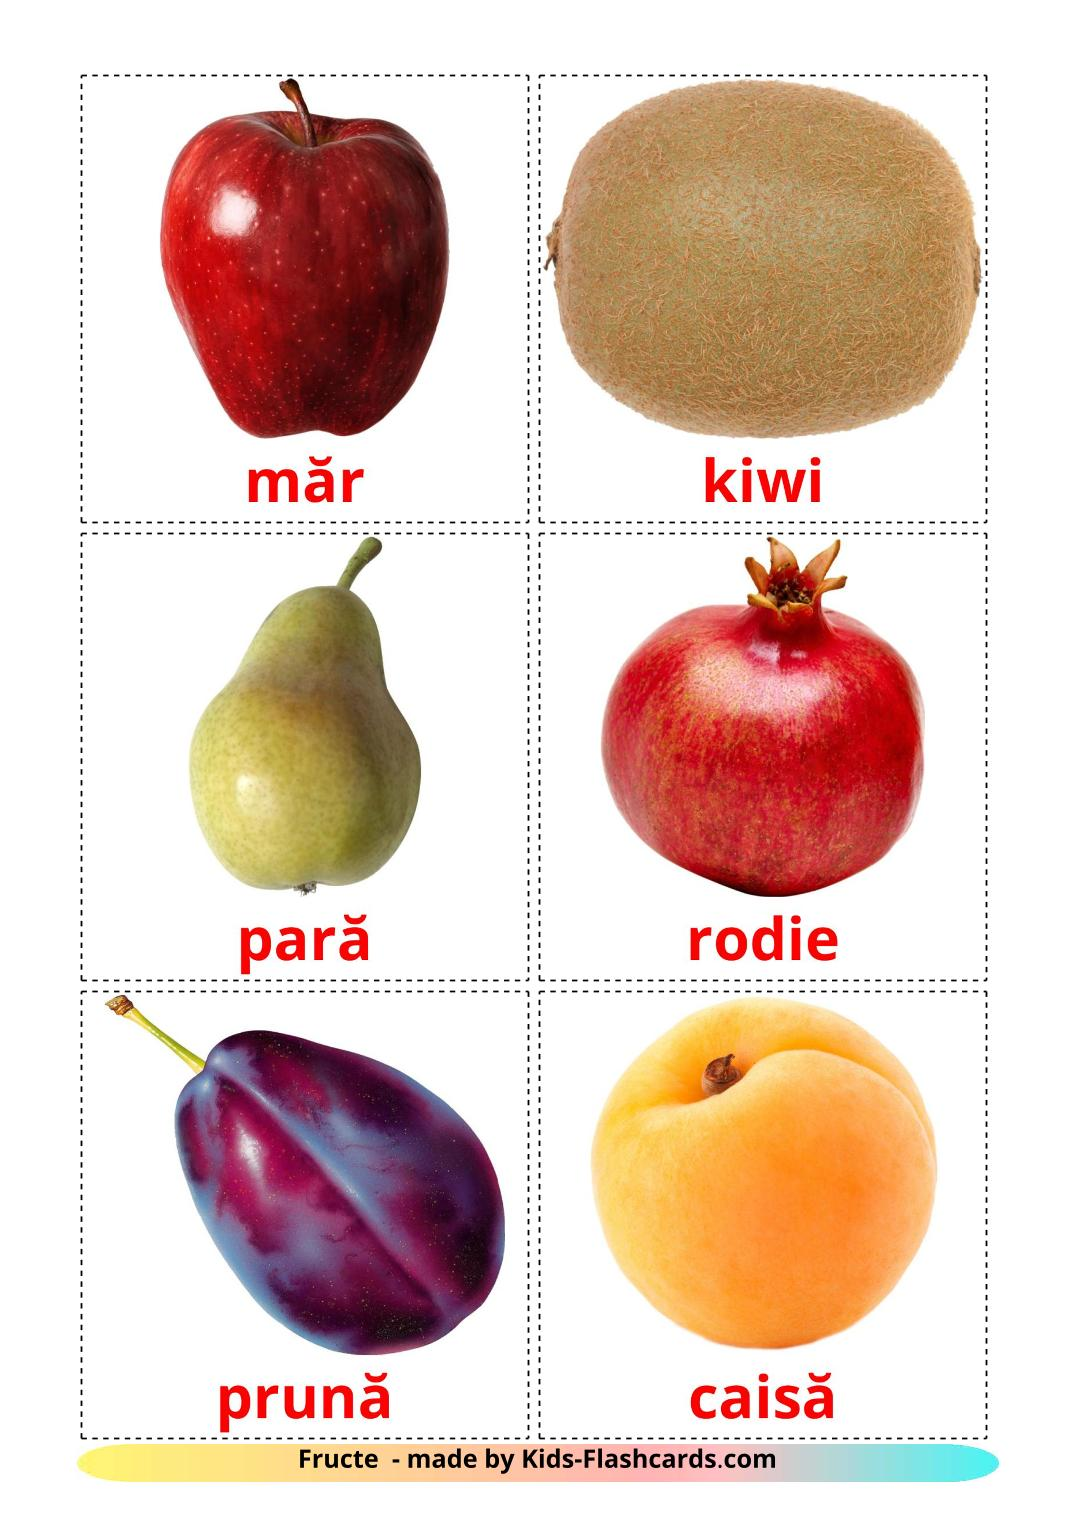 Fruits - 20 Free Printable romanian Flashcards